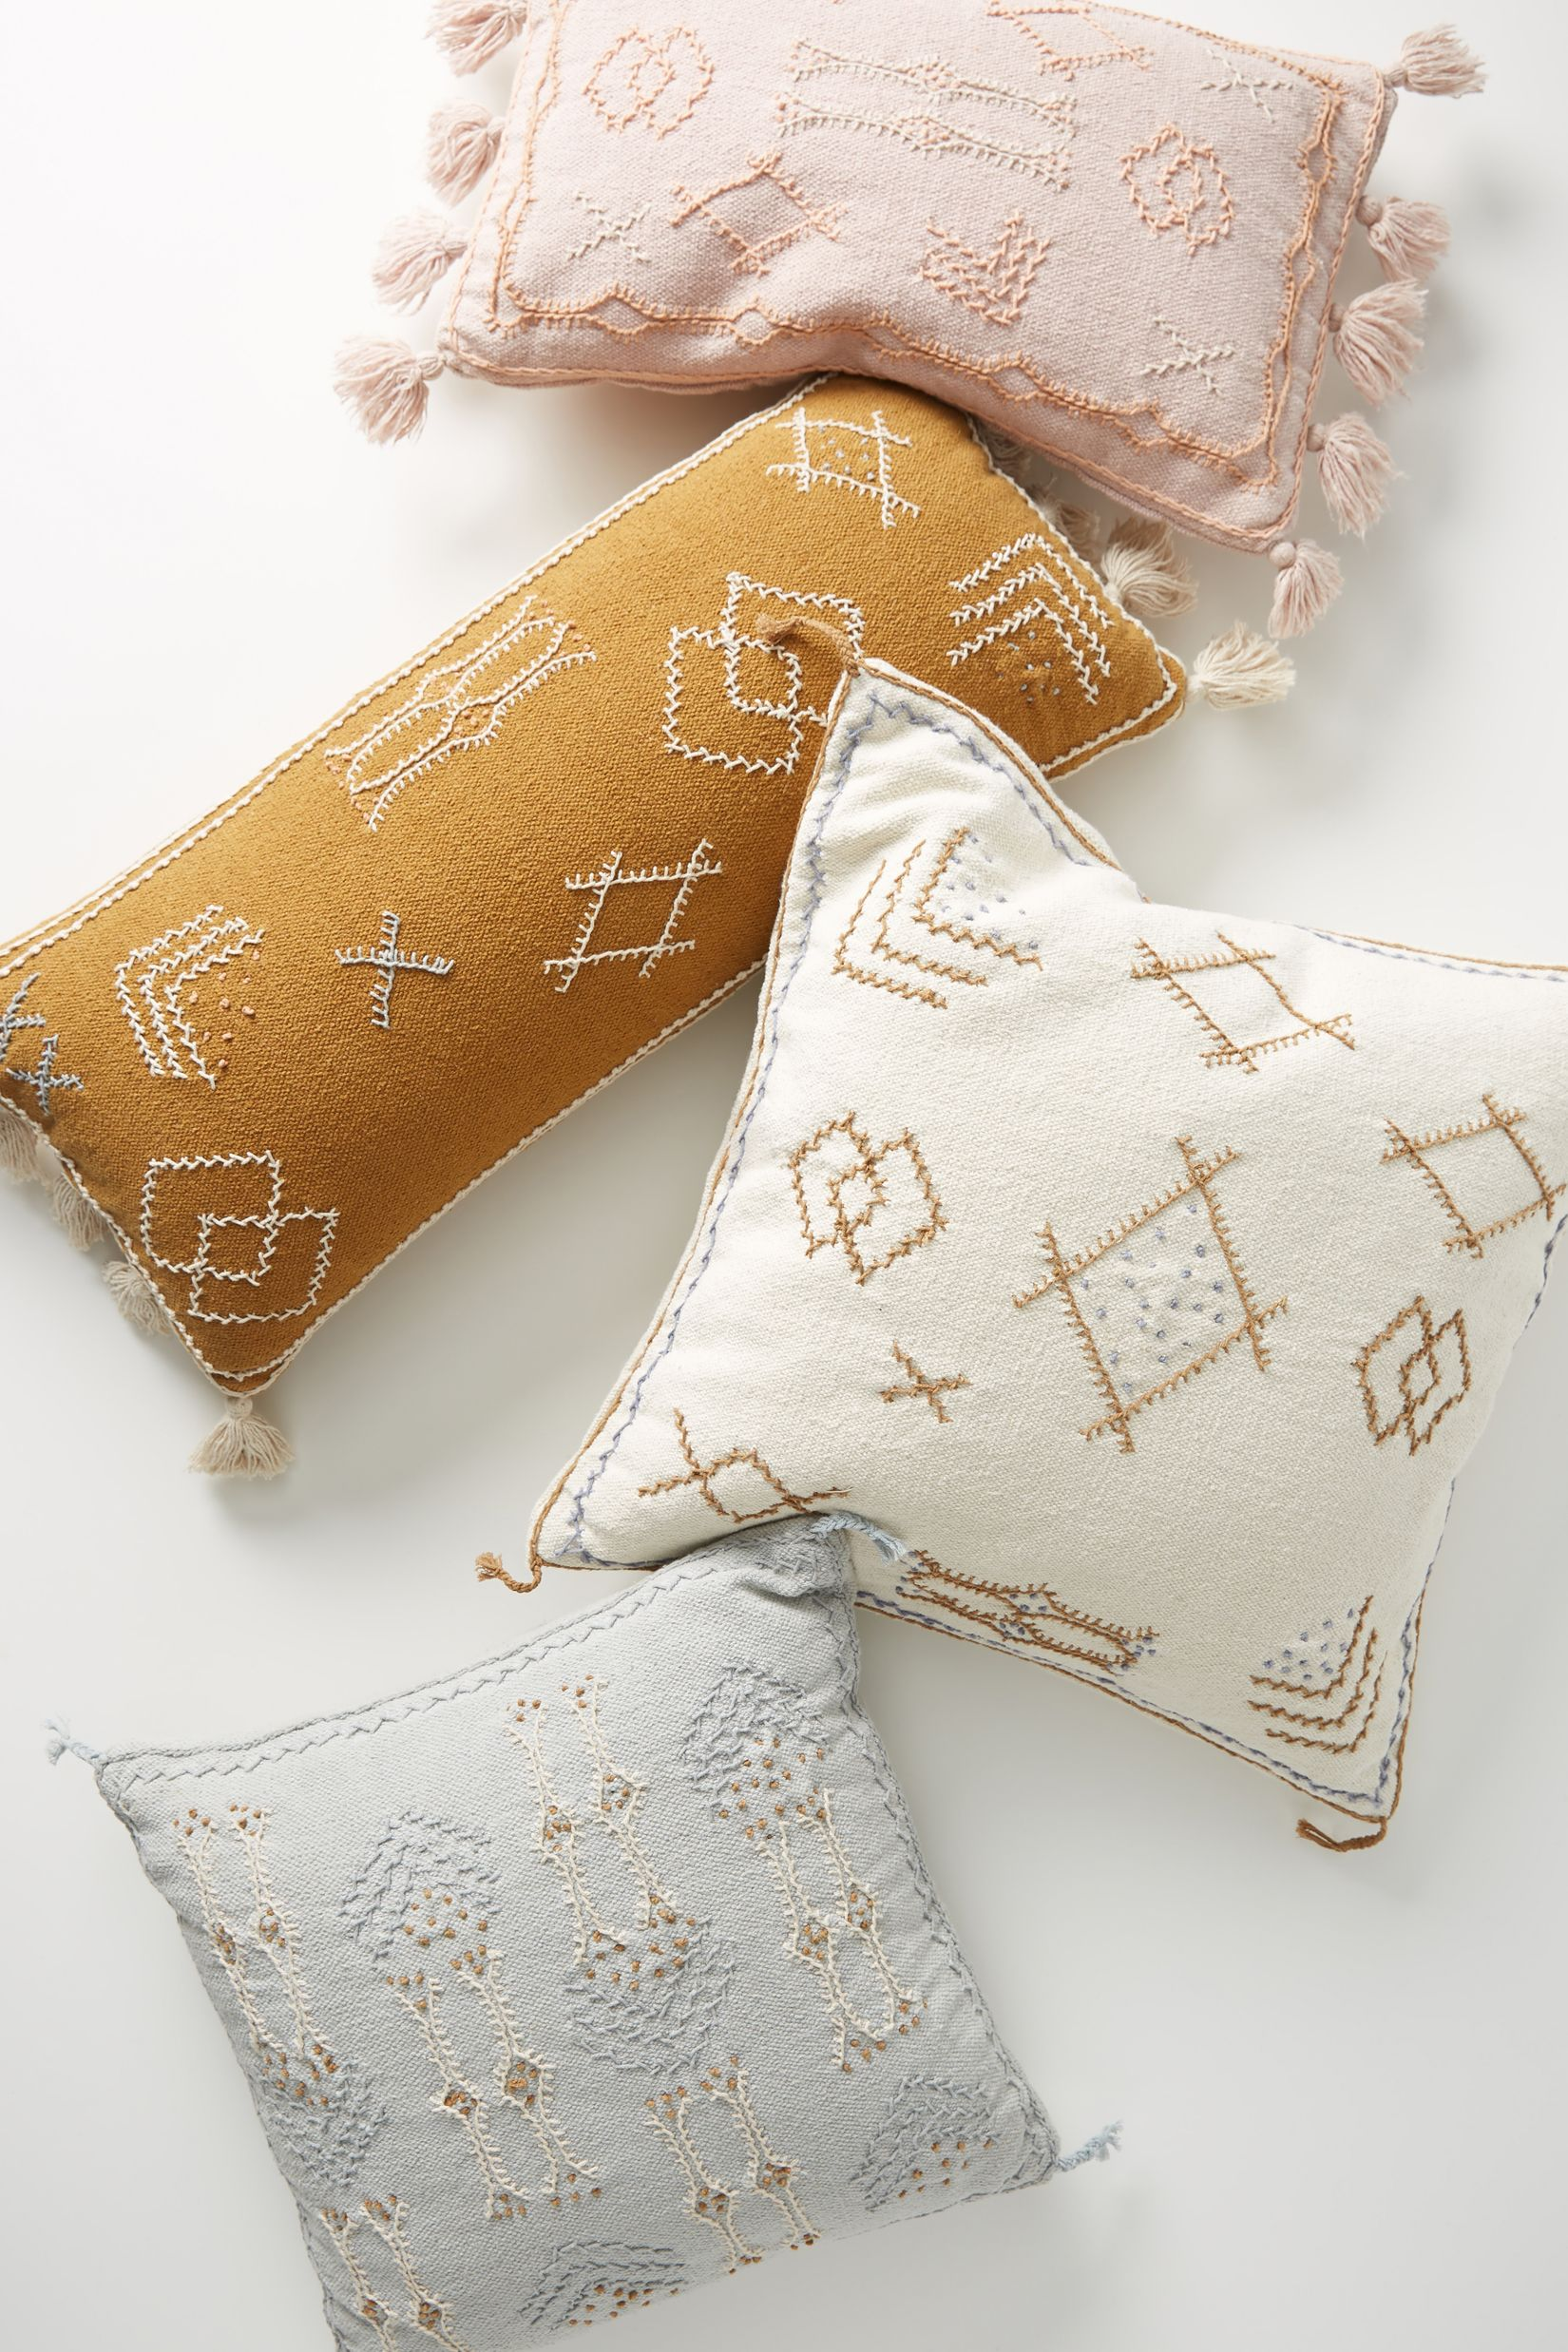 My Collaboration With Anthropologie Magnolia Joanna Gaines Pillows Throw Pillows